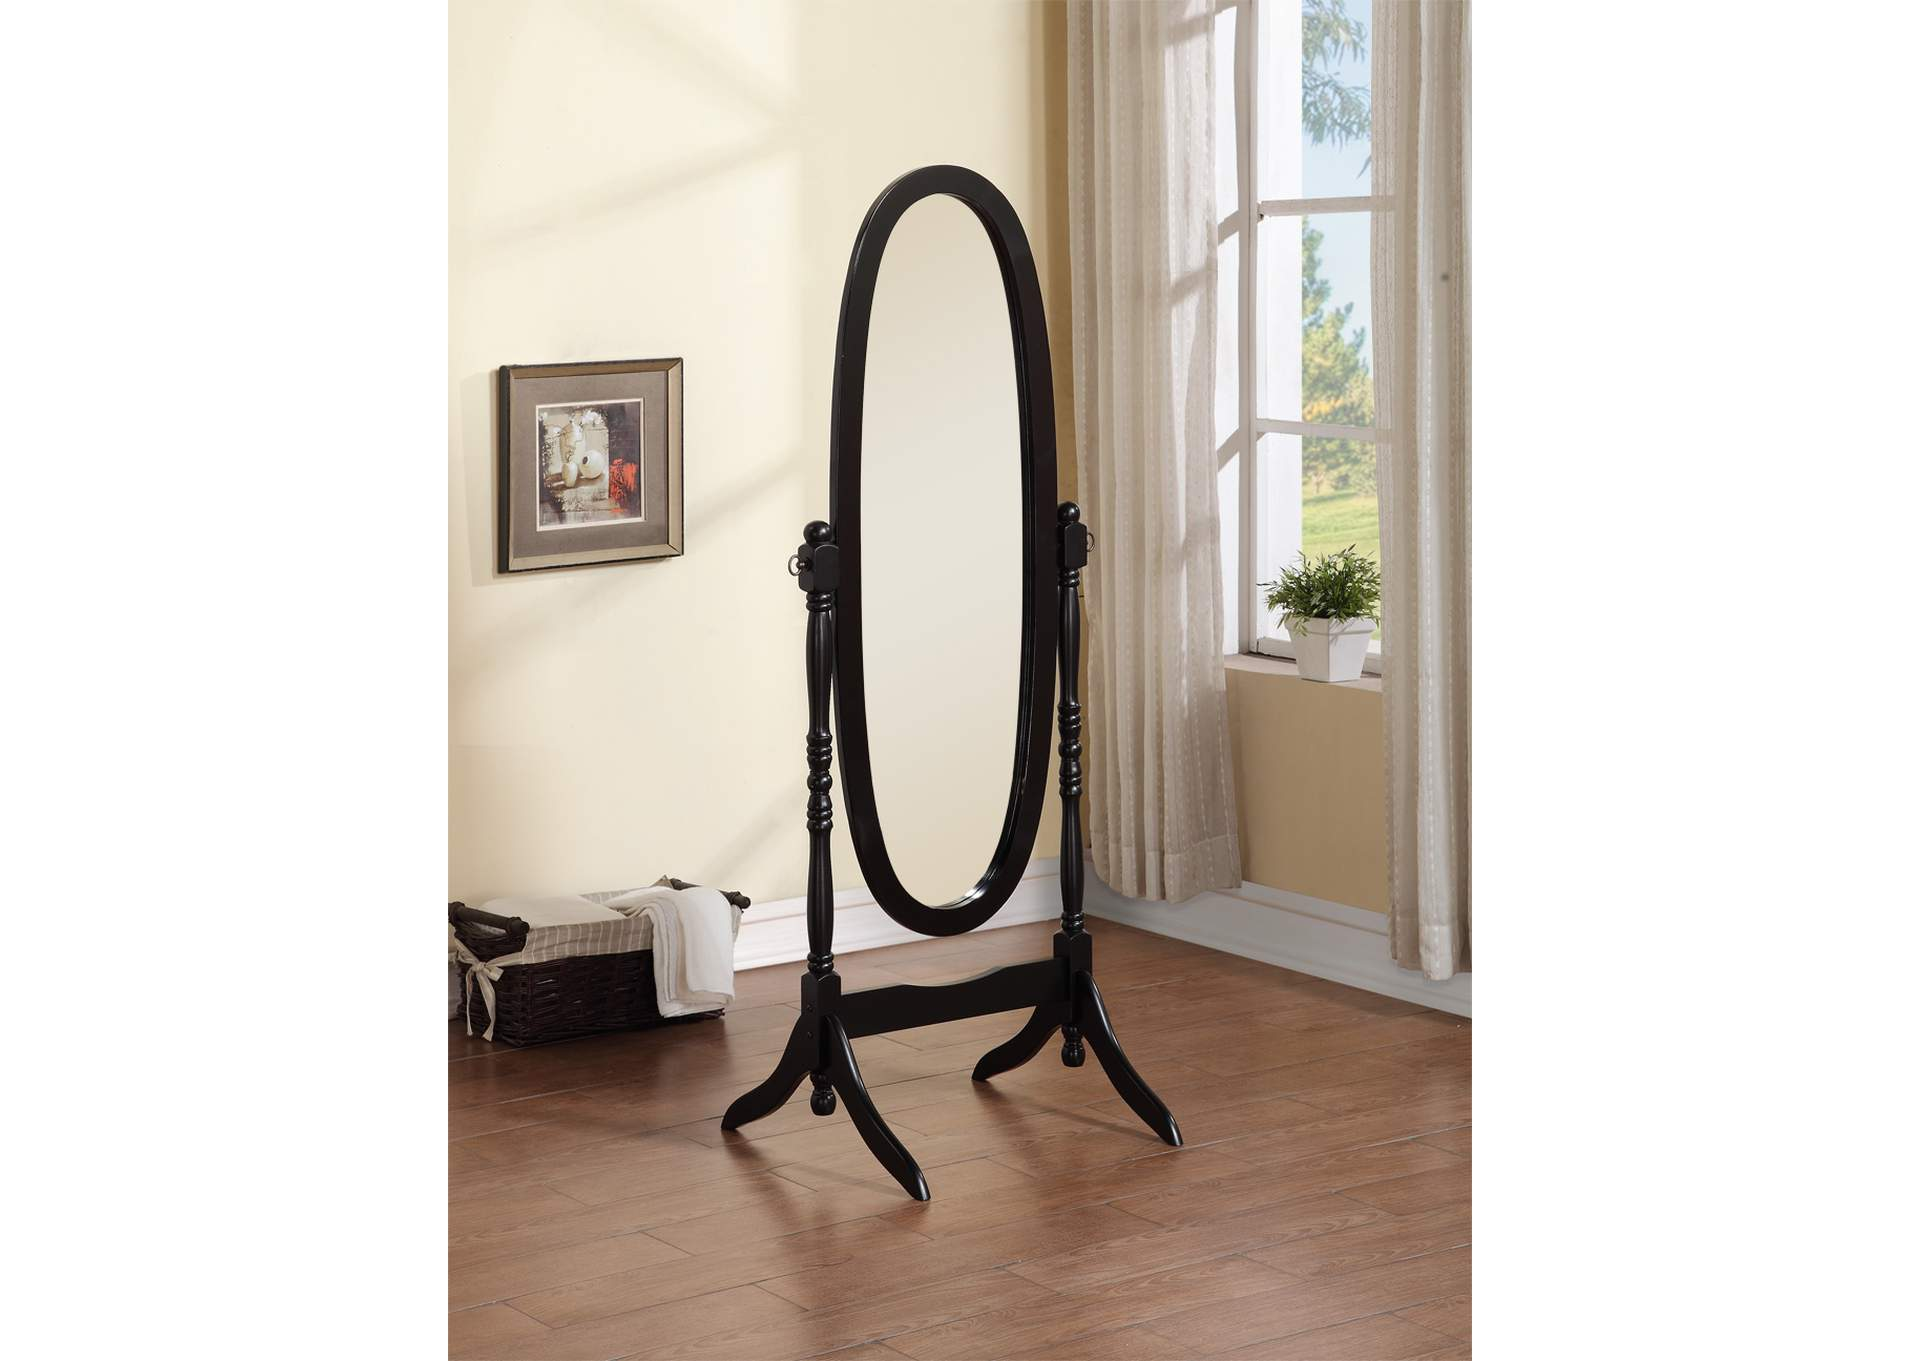 Black Cheval Mirror,Global Trading